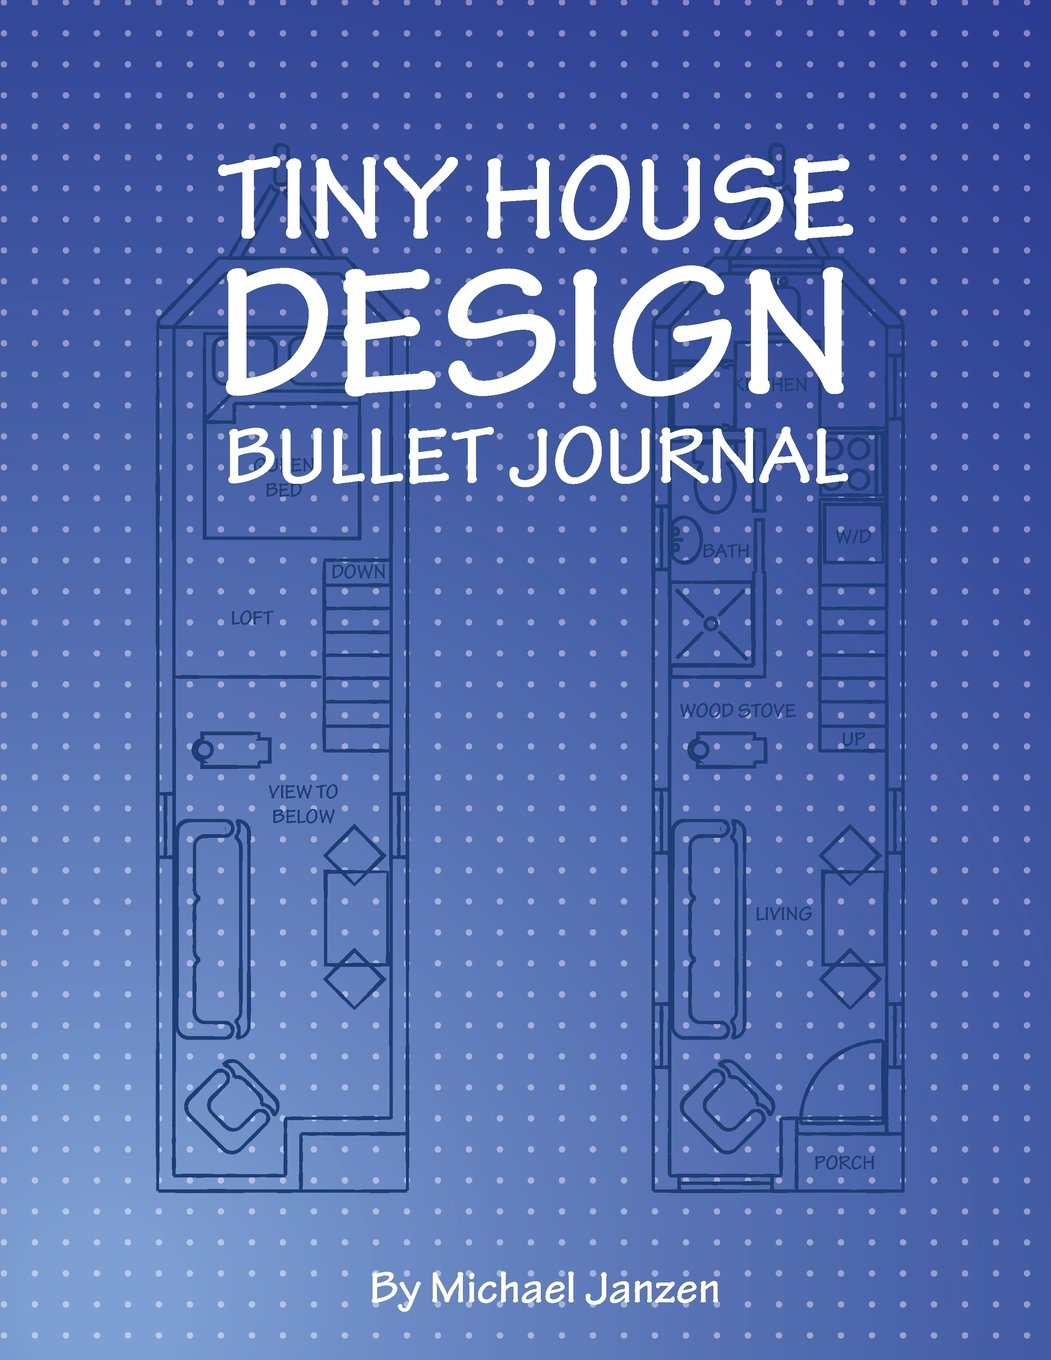 Tiny House Design Bullet Journal: Bullet Journal in Blue: Michael ...